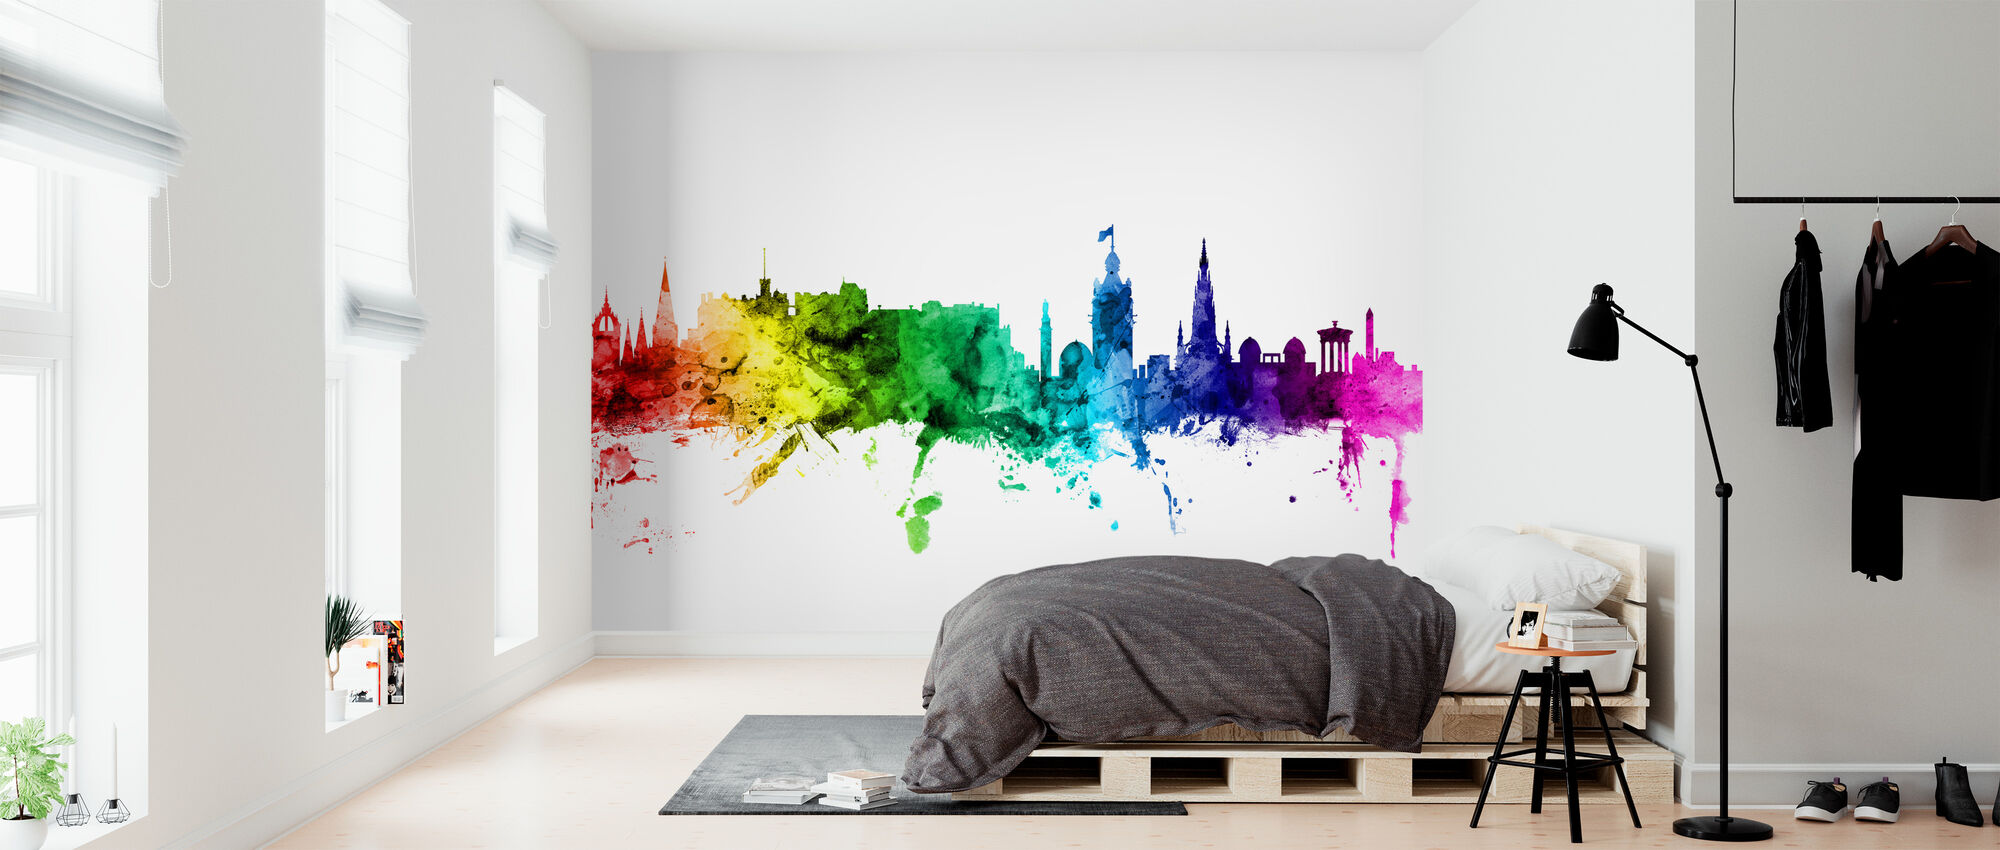 Edinburgh Skyline Rainbow - Wallpaper - Bedroom